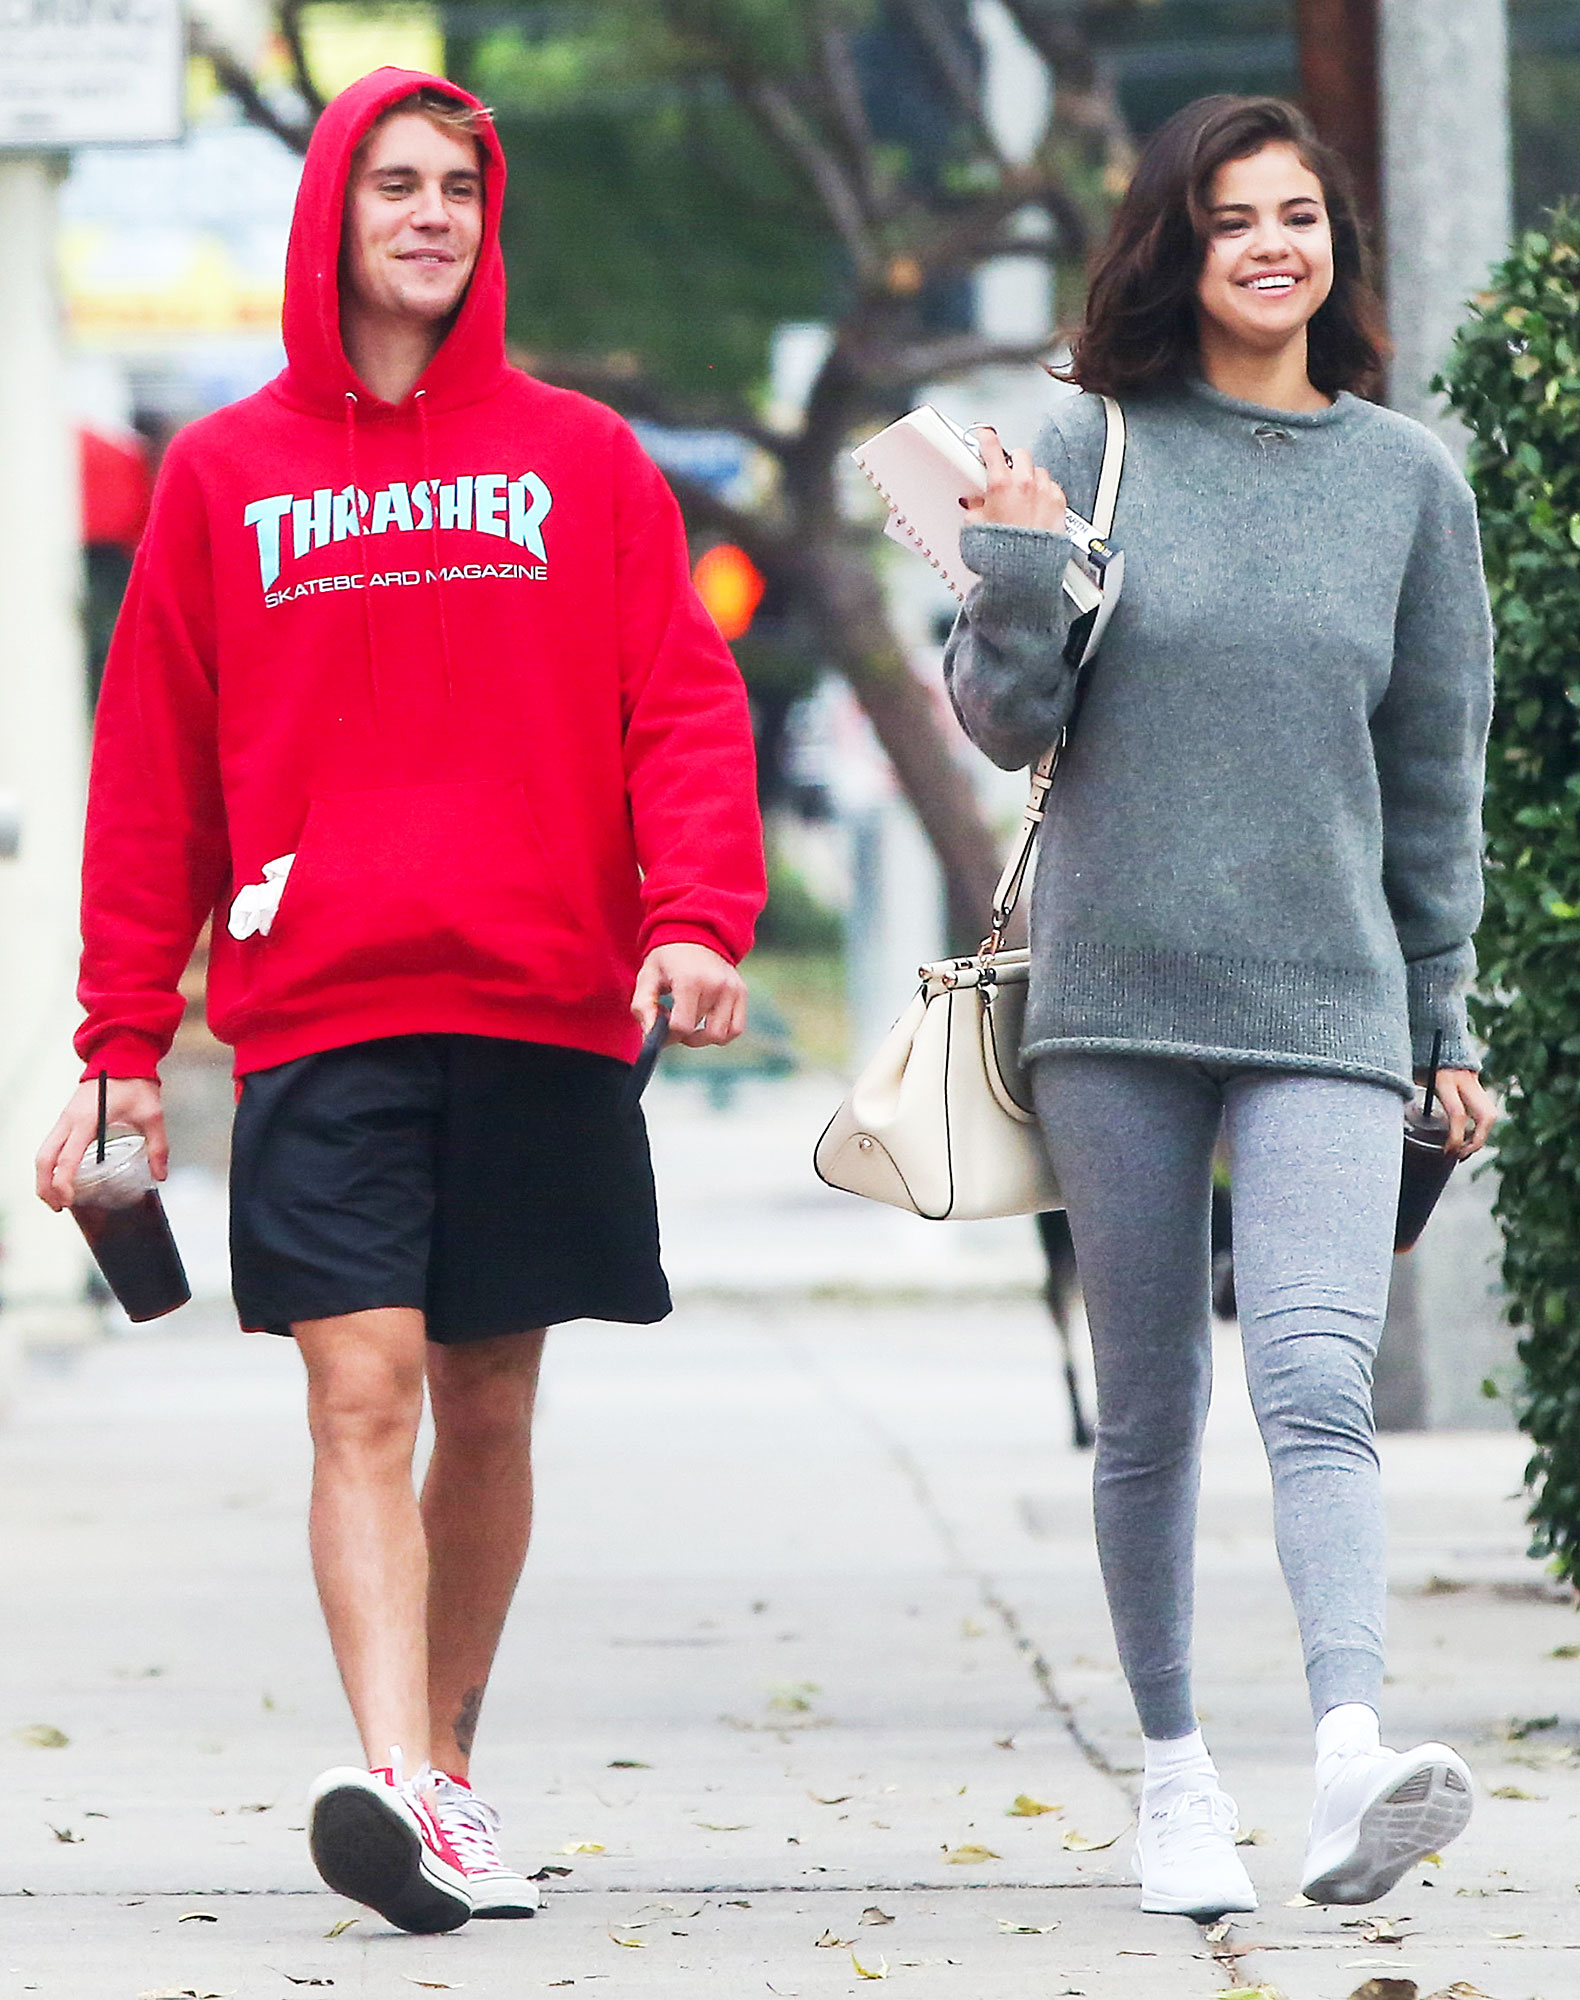 """Justin Bieber Through The Years Selena Gomez Reunion - The Just Getting Started author started dating Gomez again after her split from The Weeknd . """"I cherish people who have really impacted my life. So maybe before, it could have been forcing something that wasn't right. But that doesn't mean caring for someone ever goes away,"""" she told Billboard soon after the reunion."""